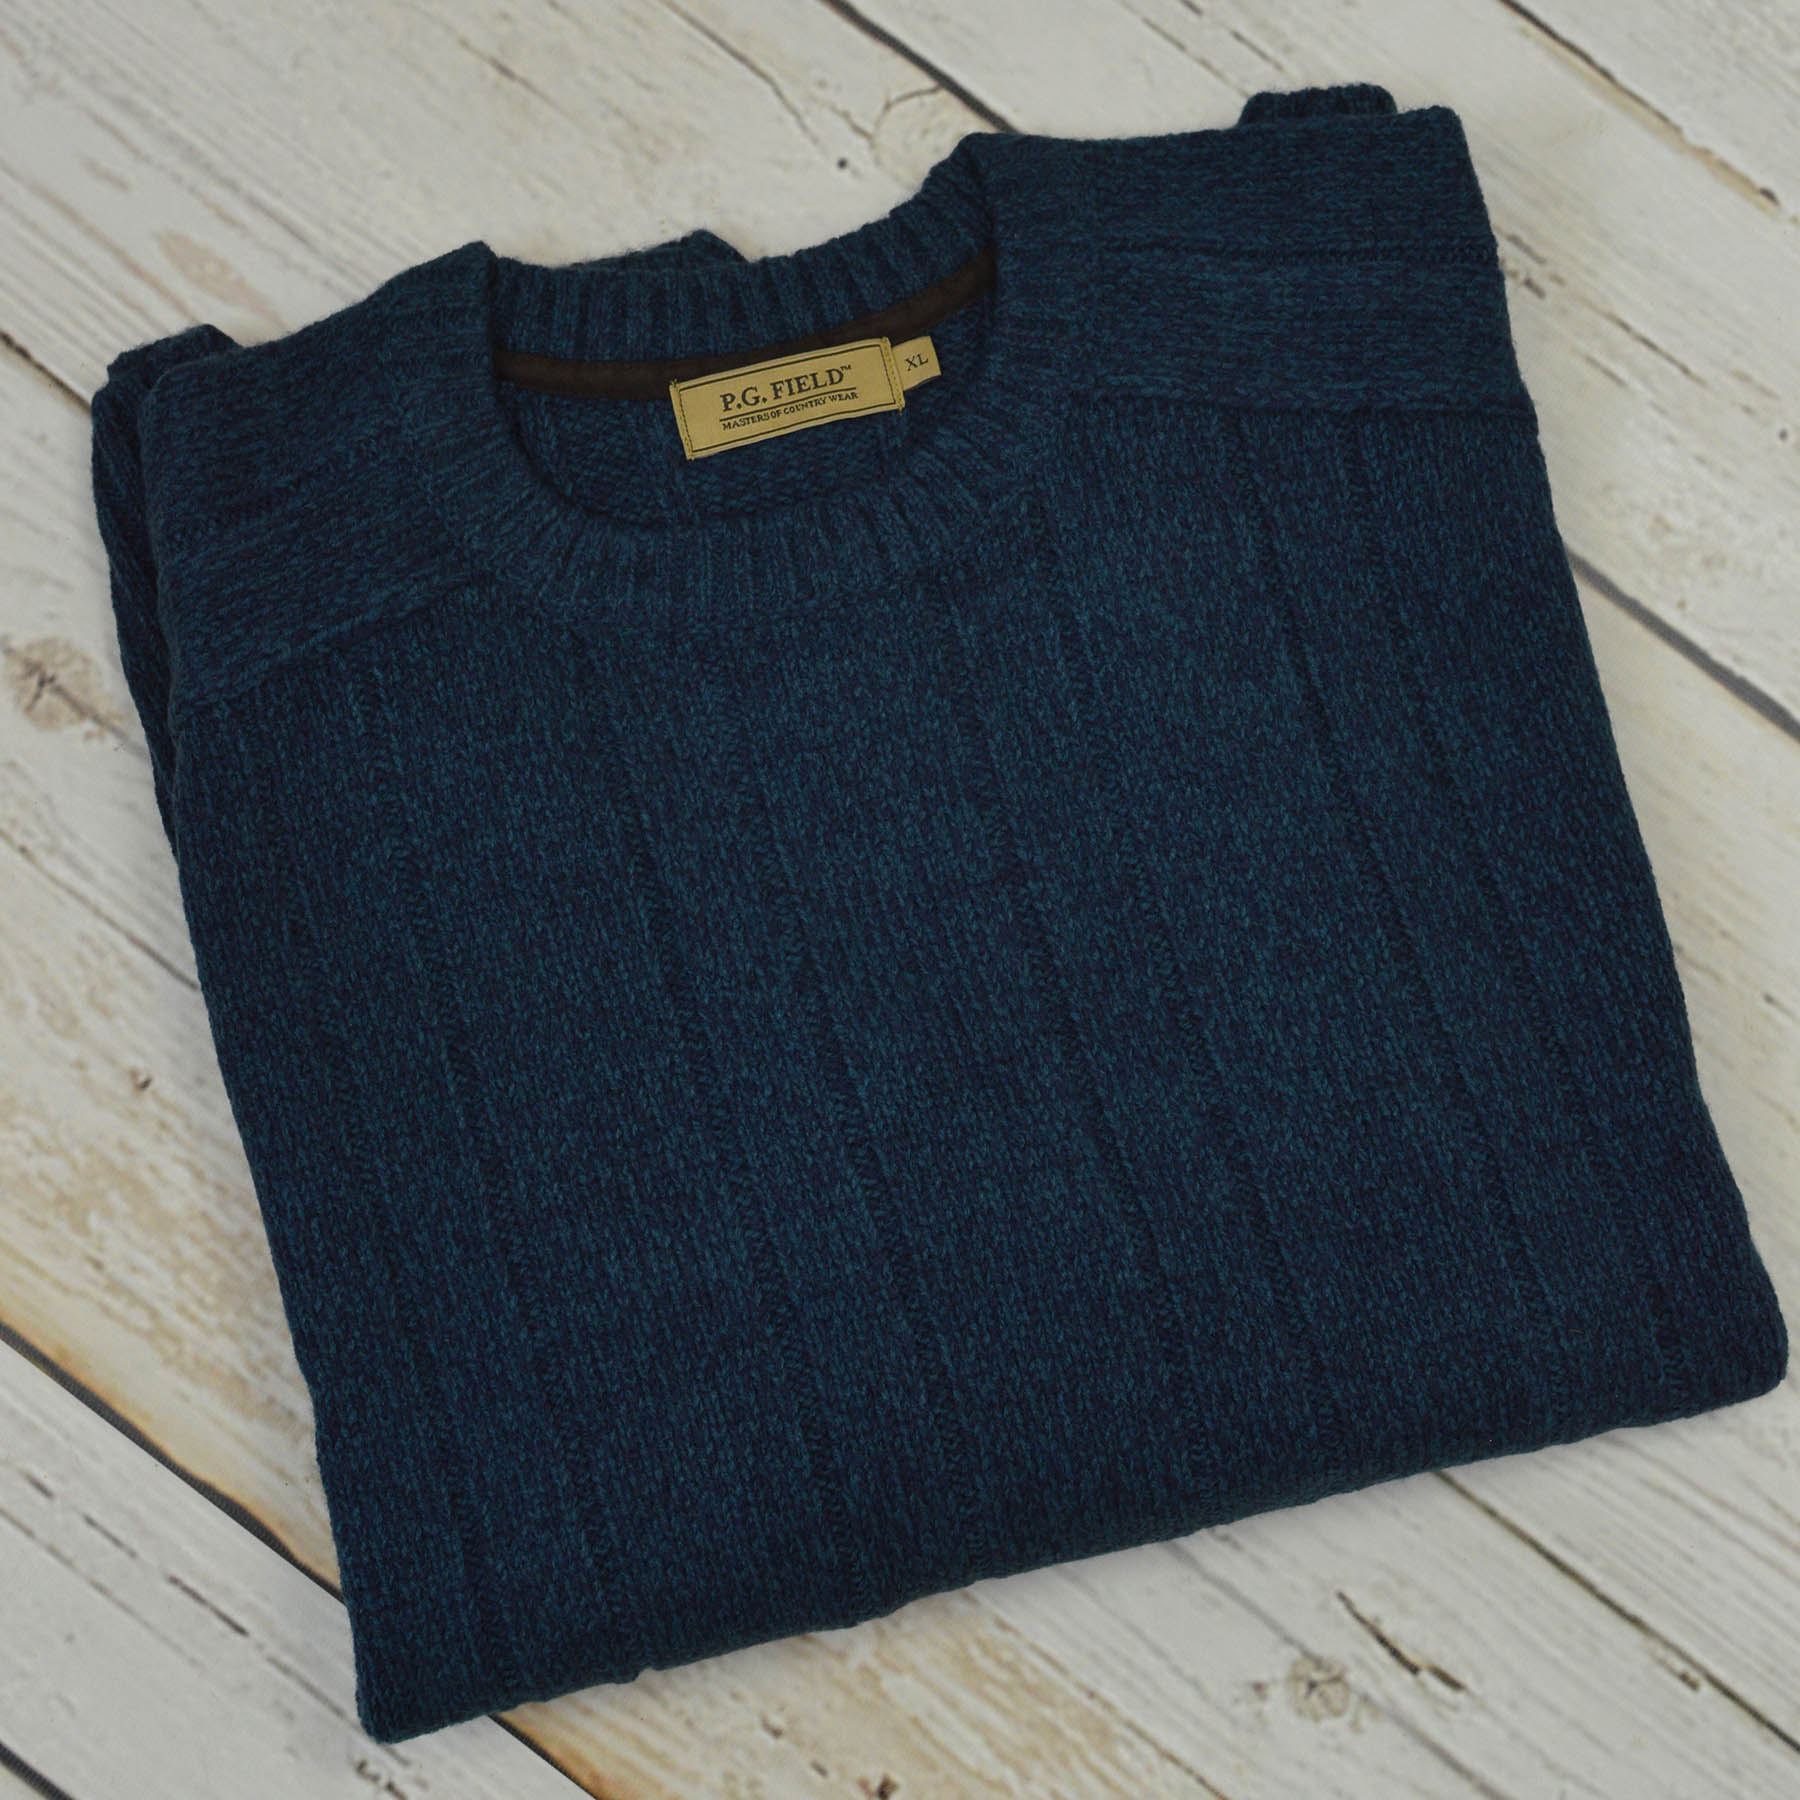 P G champ Hommes Country Wear Pull Crewneck Sweater Neuf Tailles S 2XL